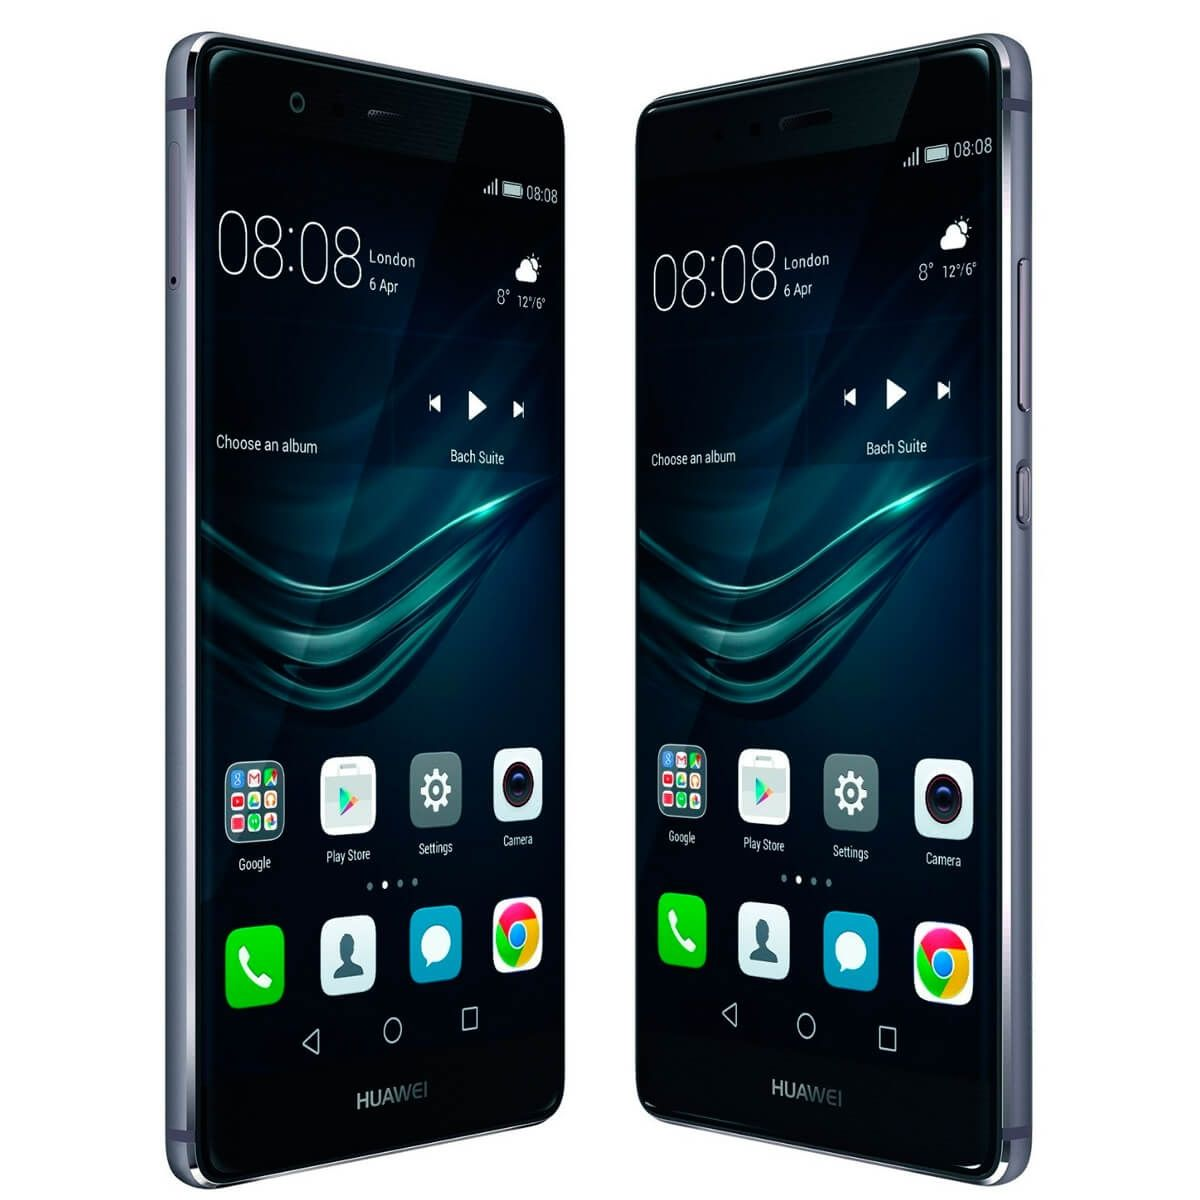 huawei p9 caracteristicas 32gb gris titanio. Black Bedroom Furniture Sets. Home Design Ideas